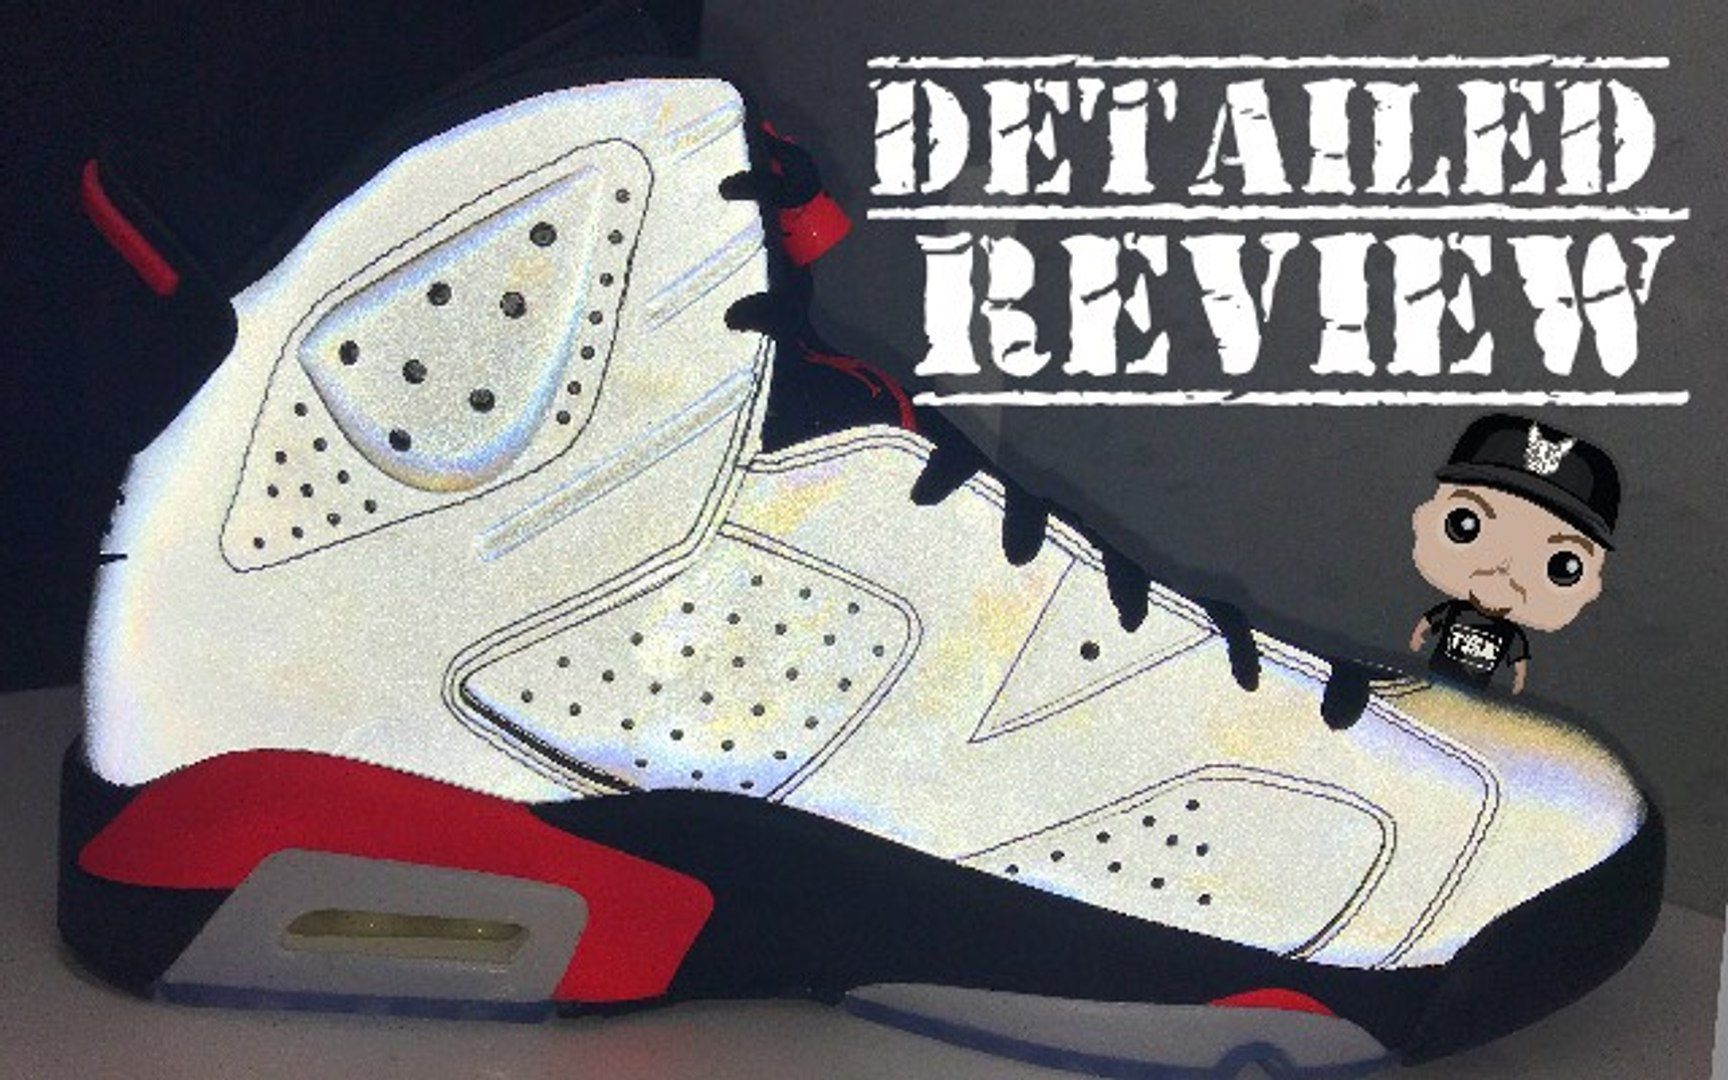 Air Jordan 6 VI Reflection of a Champion Infrared 3M Retro Sneaker Detailed Look With Reflective Test